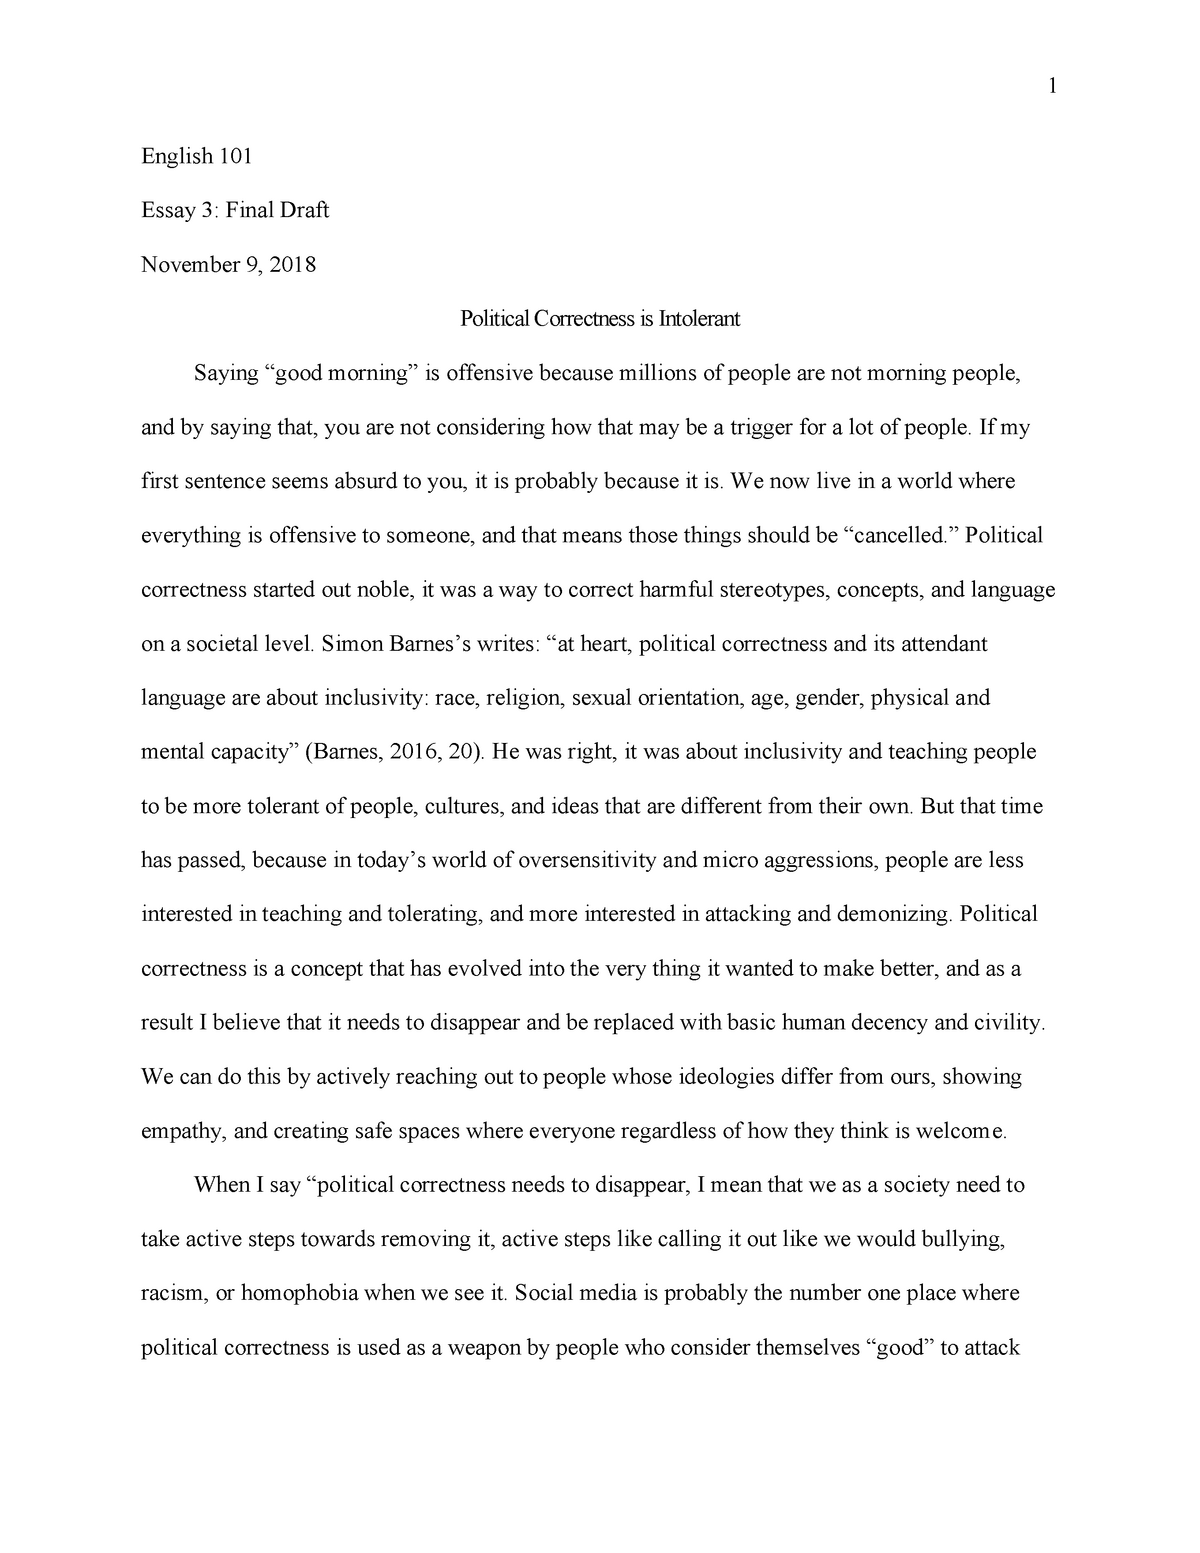 How To Write Science Essay  5 Paragraph Essay Topics For High School also Essays And Term Papers Political Correctness   English    Lacc   Studocu Fahrenheit 451 Essay Thesis